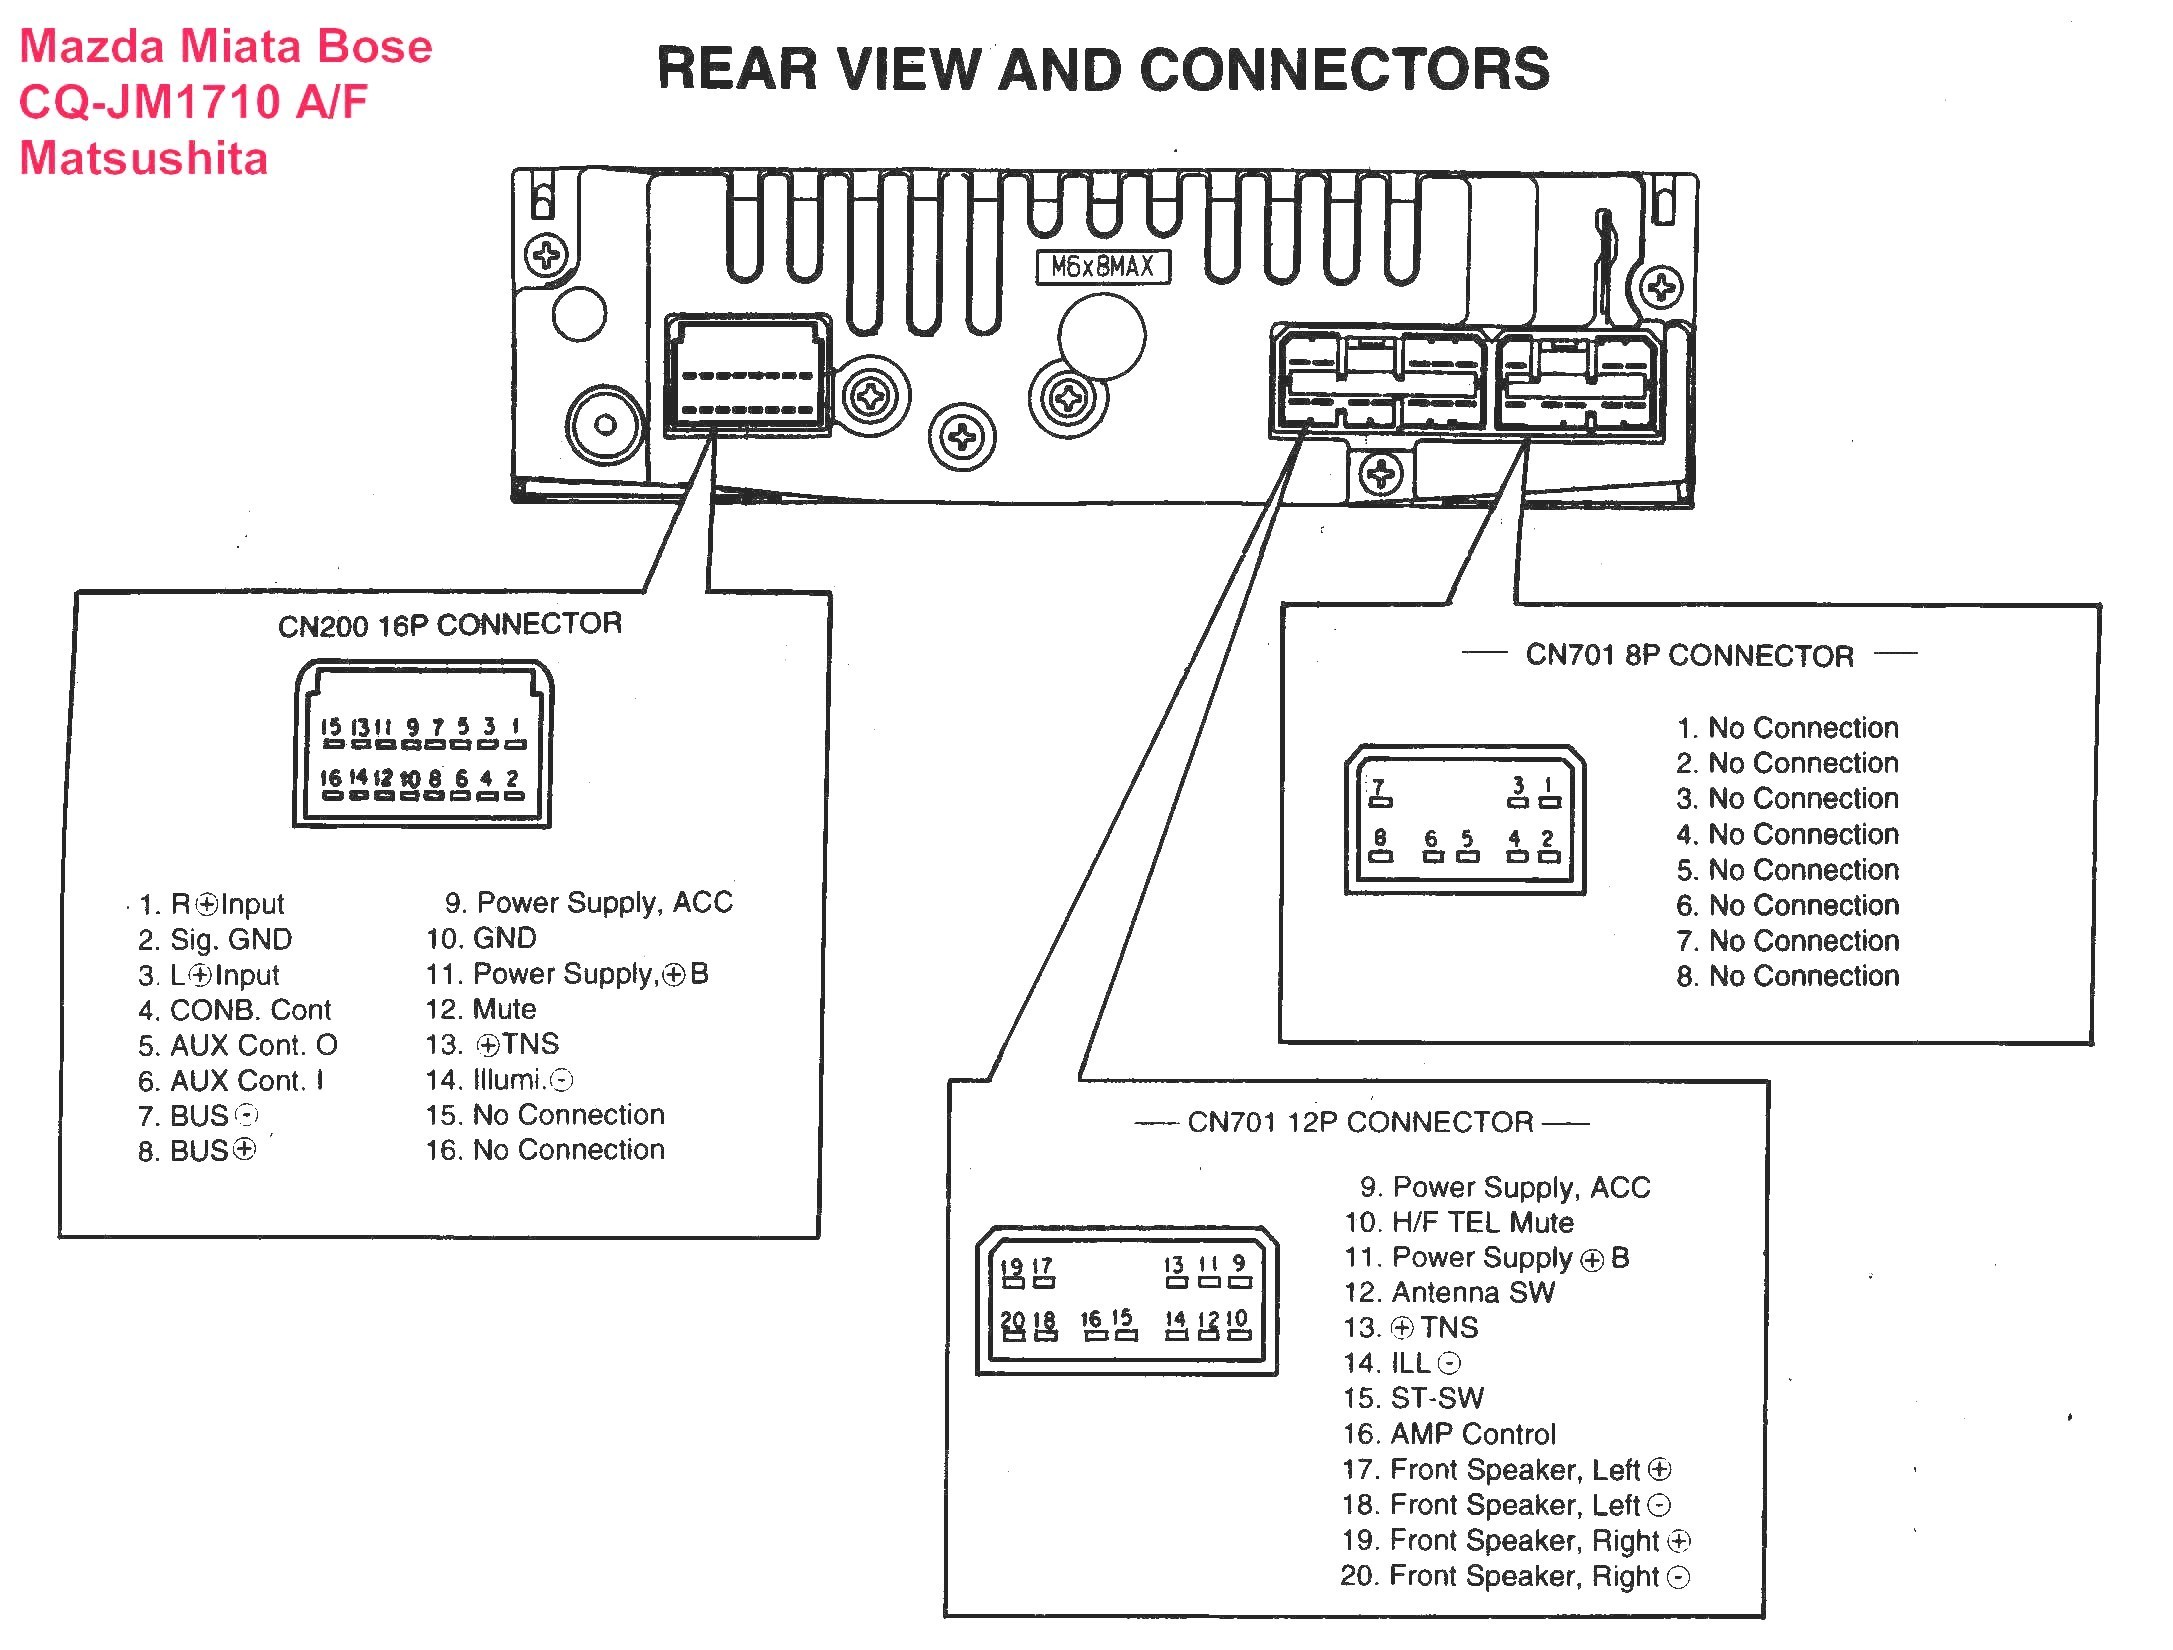 Home Stereo Wiring Diagram whole House Audio Wiring Diagram Car Diagram Car Stereo Wiring Of Home Stereo Wiring Diagram